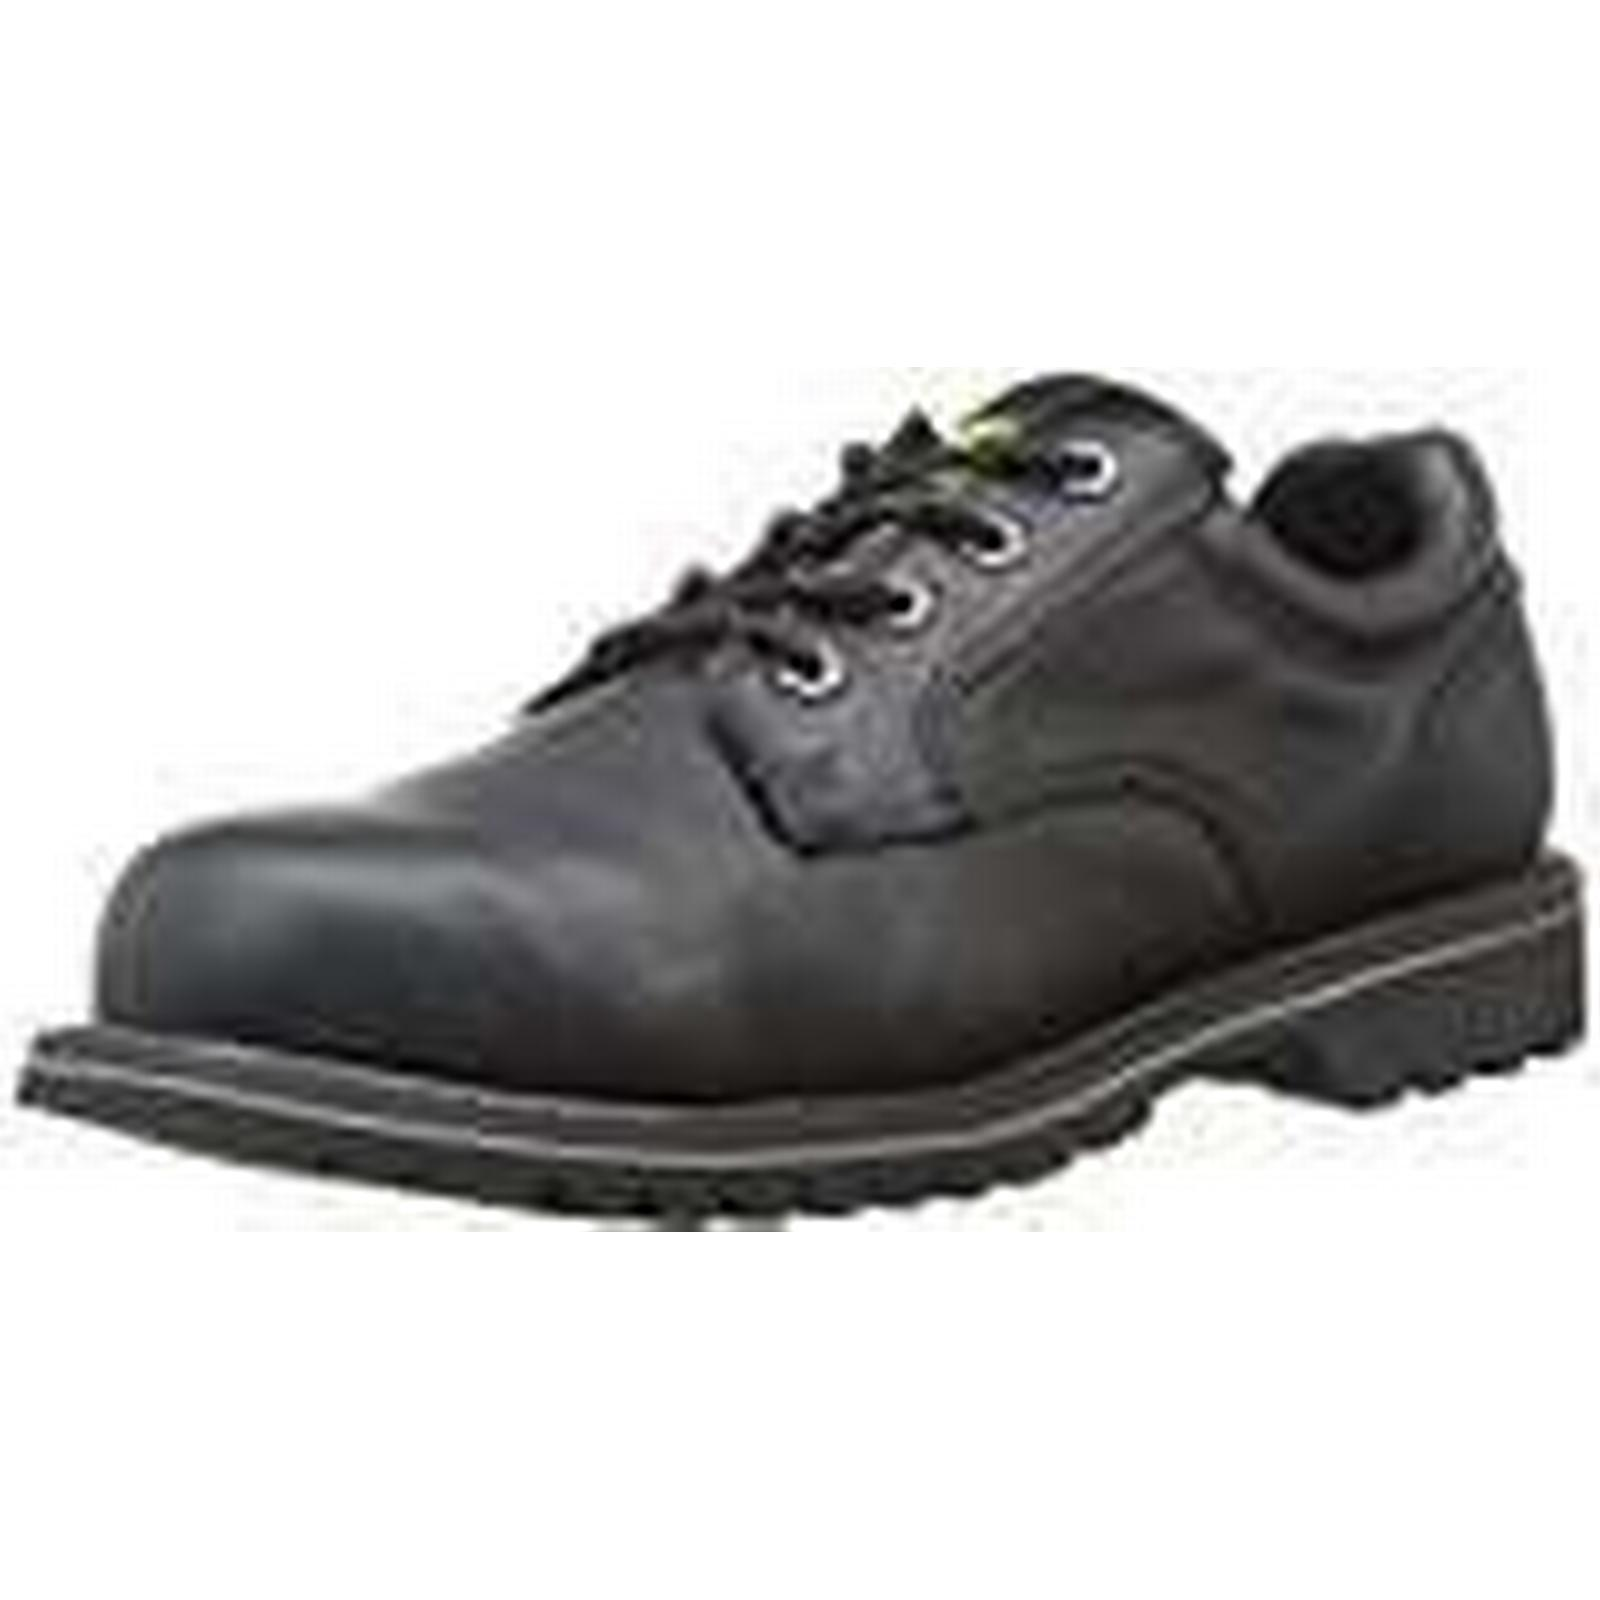 Caterpillar Electric Men St Sb Hro Sra, Men Electric Safety Boots, Black (Black), 9 UK (43 EU) 7305e3